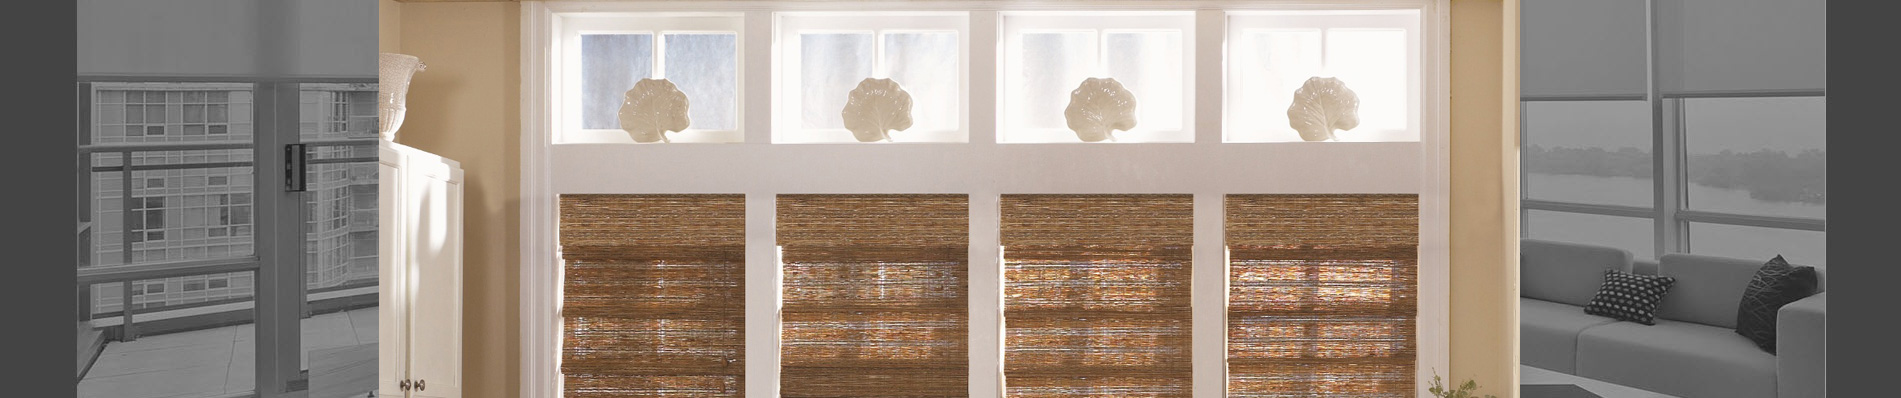 Batter operated roller shades are handmade to your exact specifications.